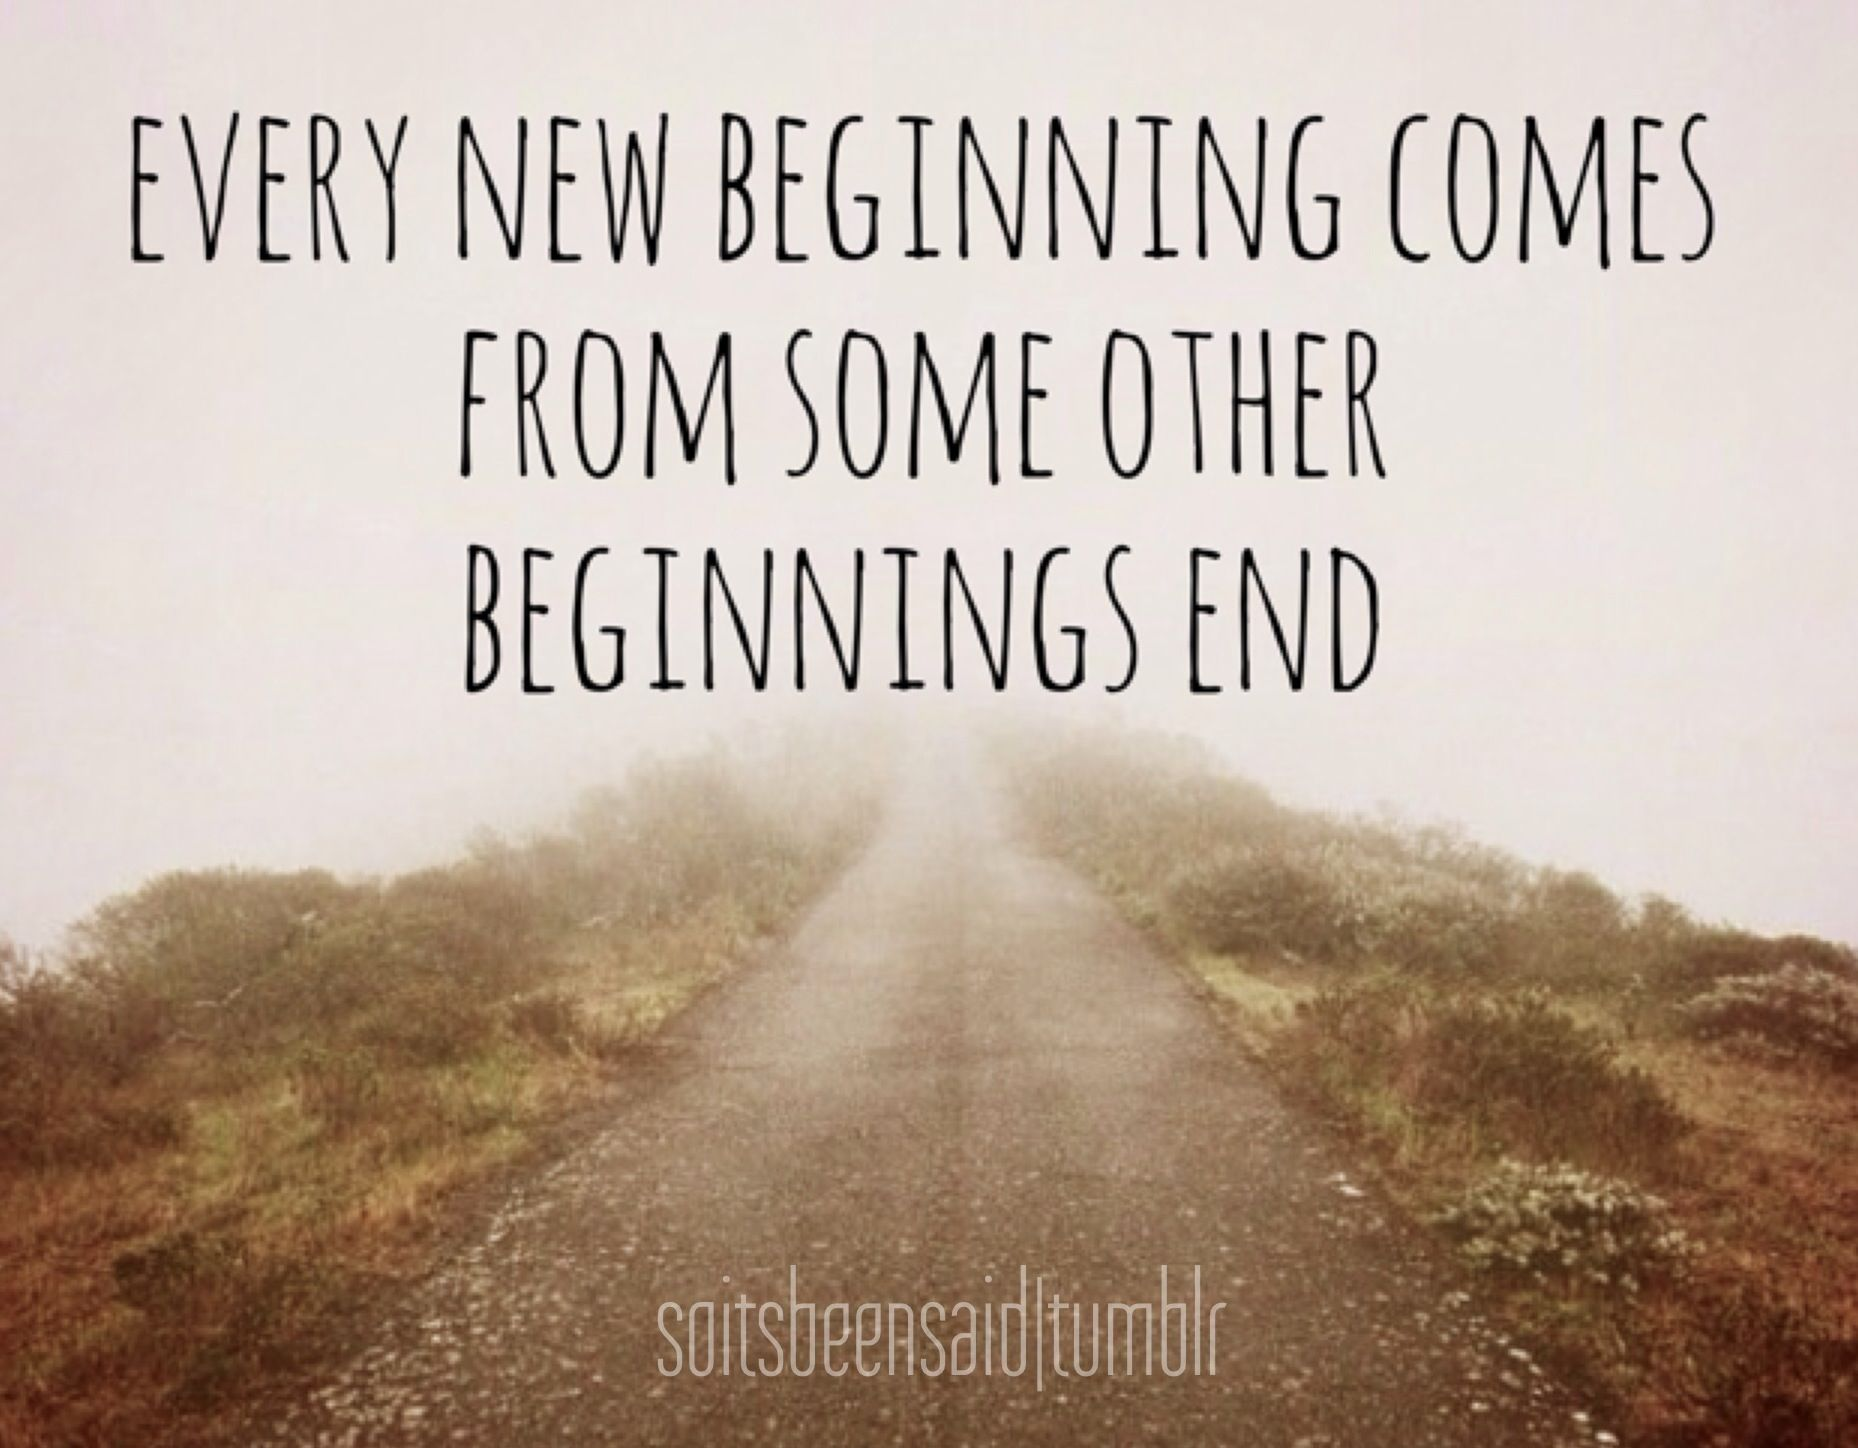 Quotes Quote Quotation Quotations Song Closingtime Every New Beginning Come From Some Other Beginnings End Truth L New Journey Quotes Journey Quotes Cool Words